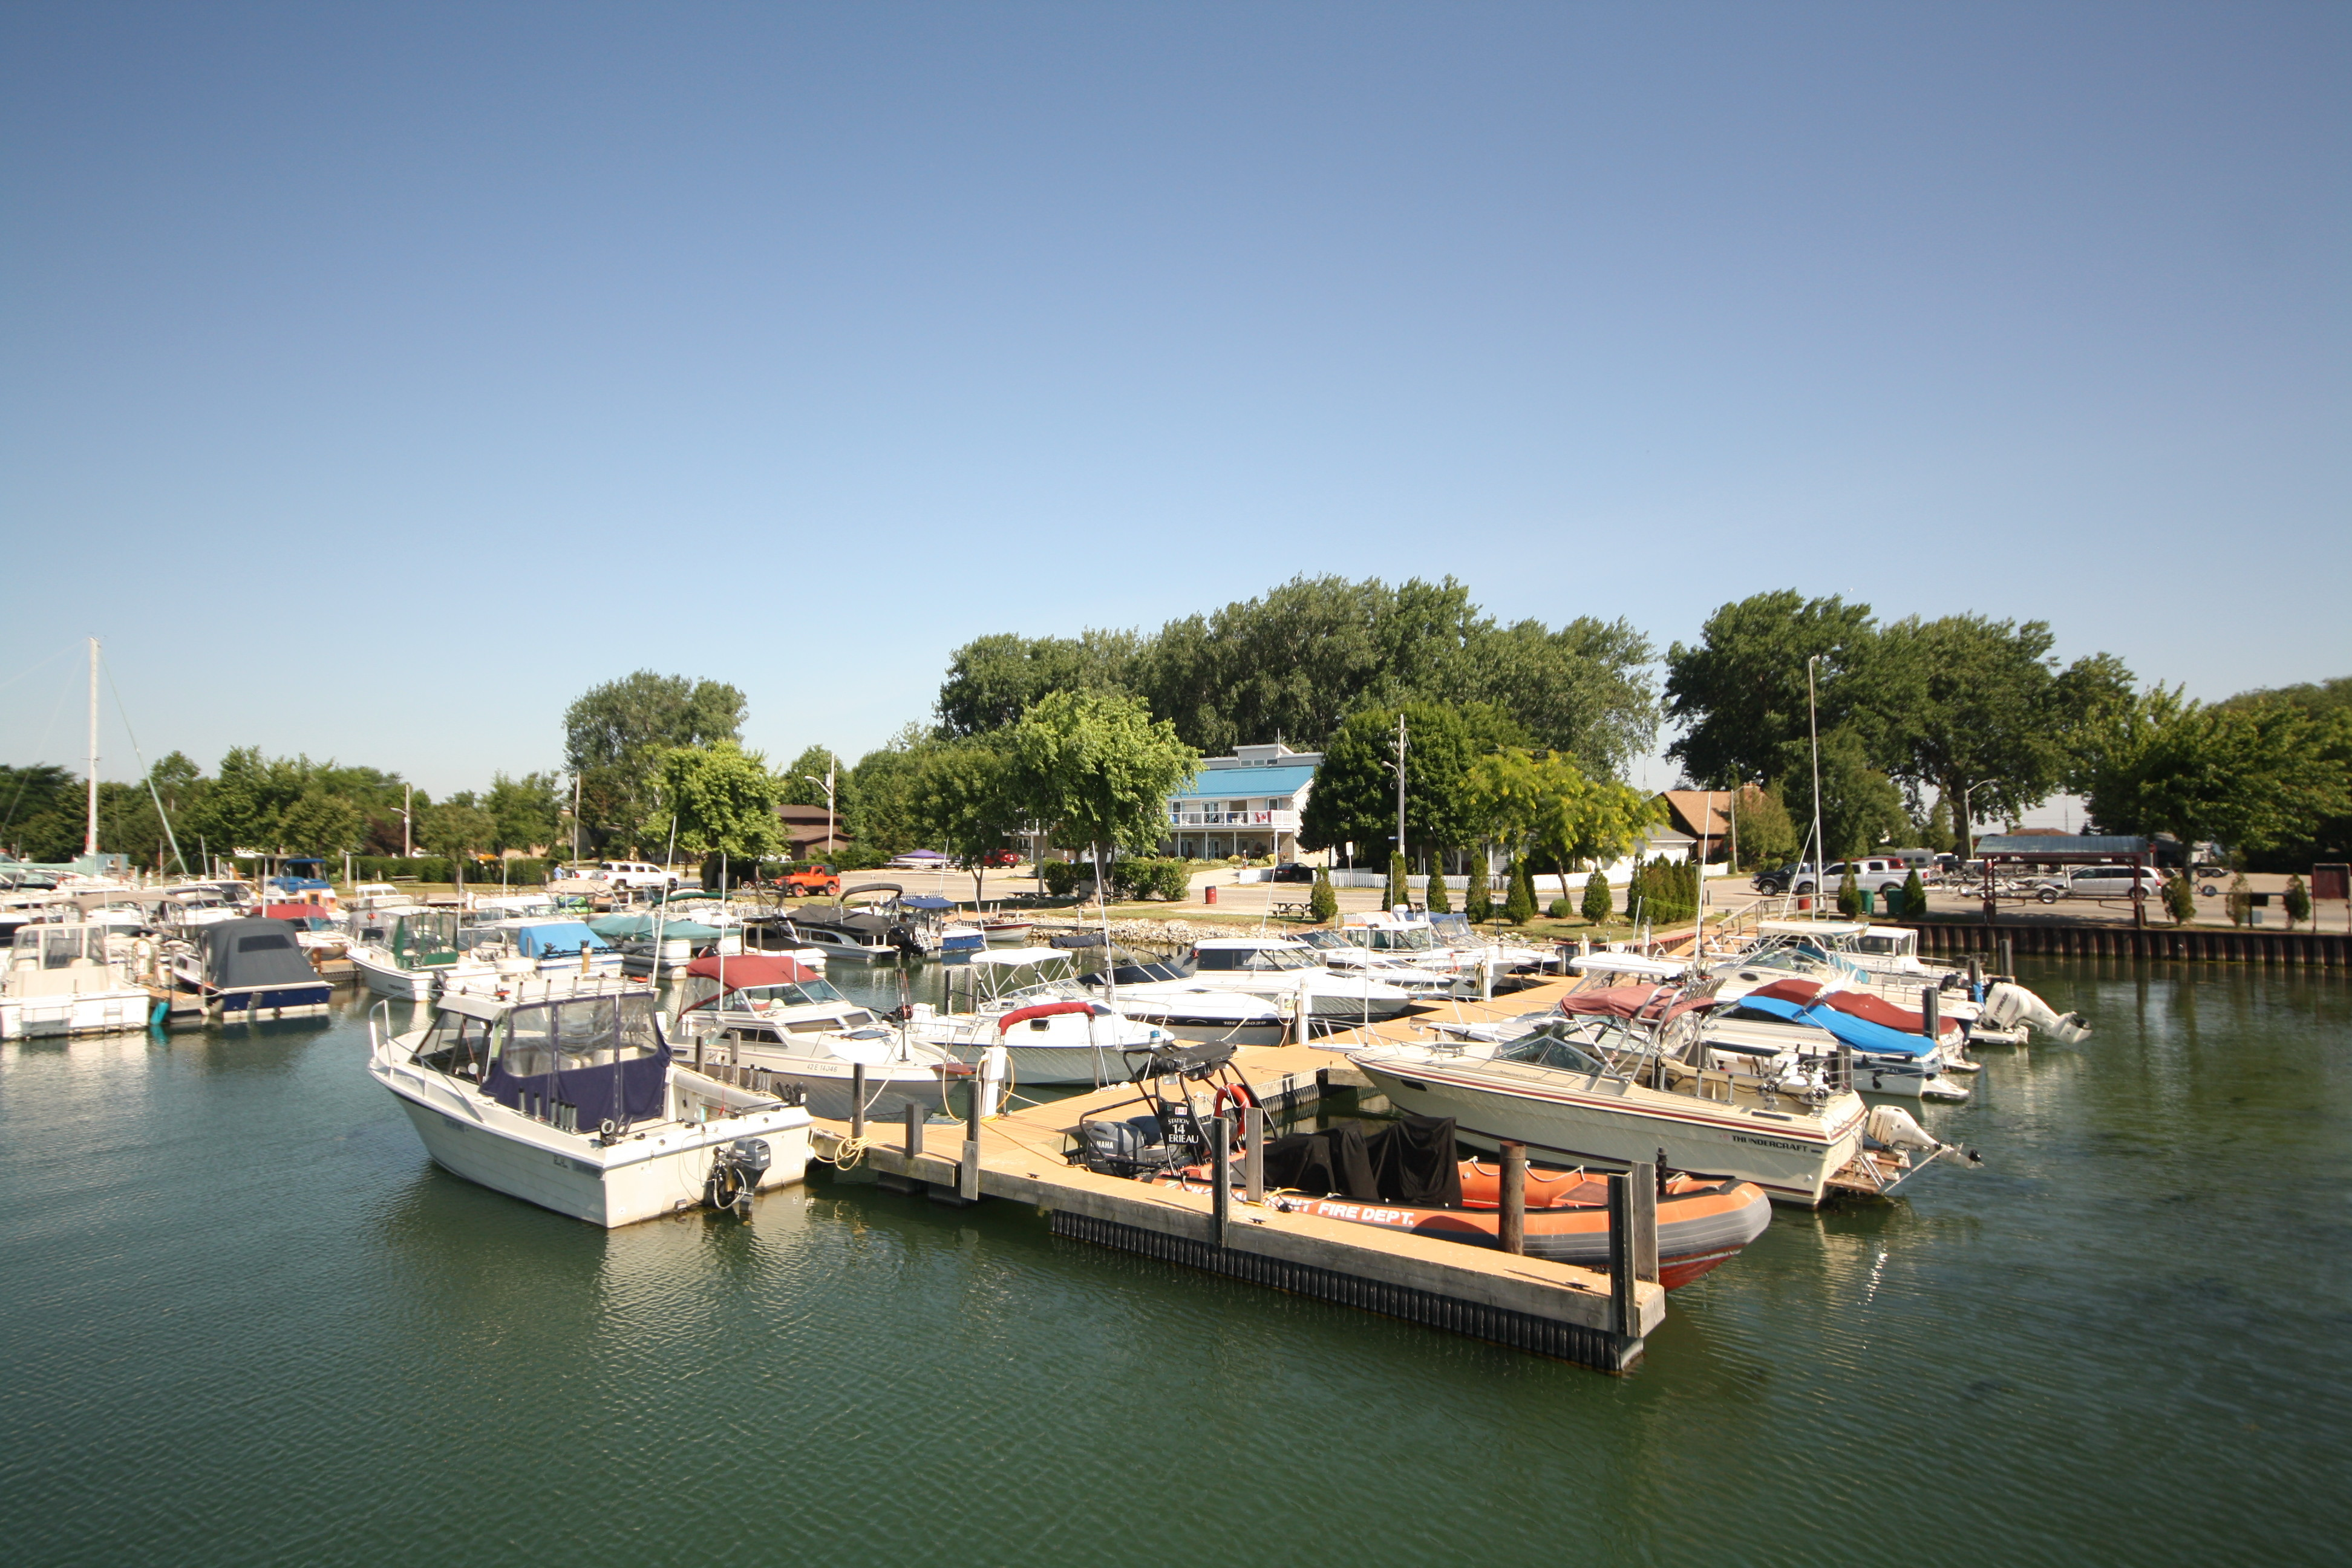 The Erieau Marina is a fun, fine, and inexpensive, place to park you boat for the night. JIM BYERS PHOTO